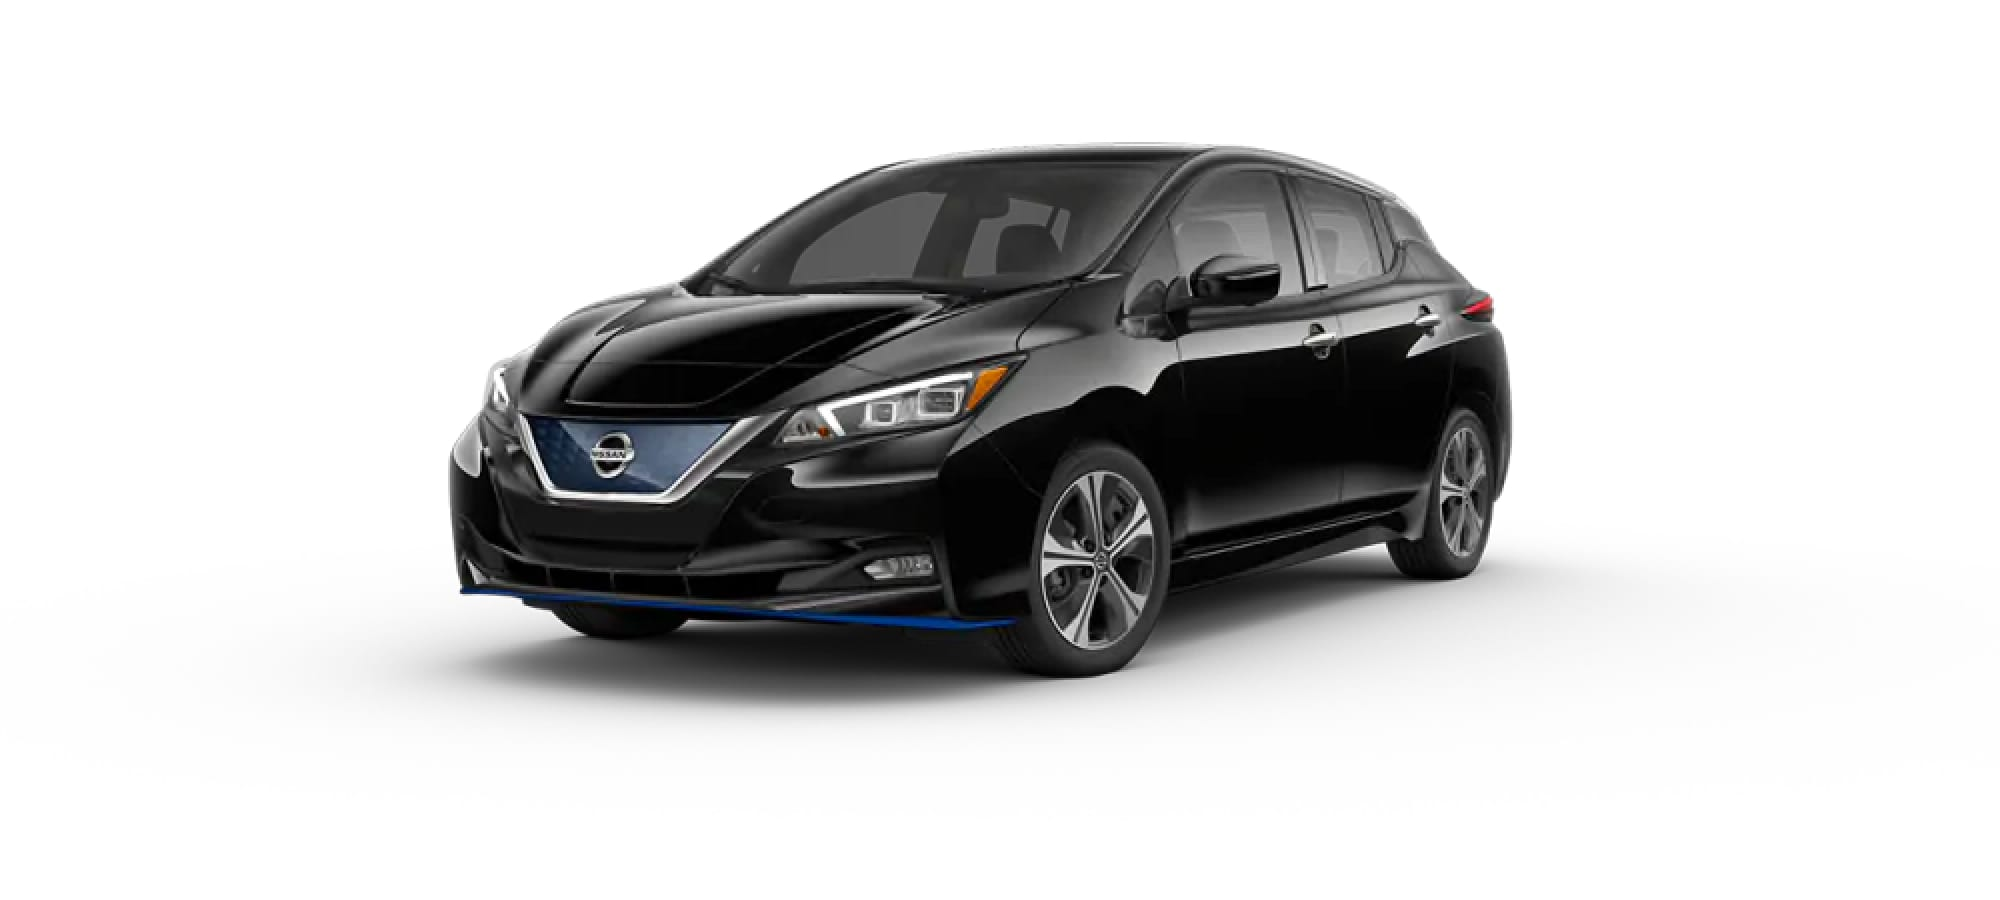 Super Black Nissan Leaf